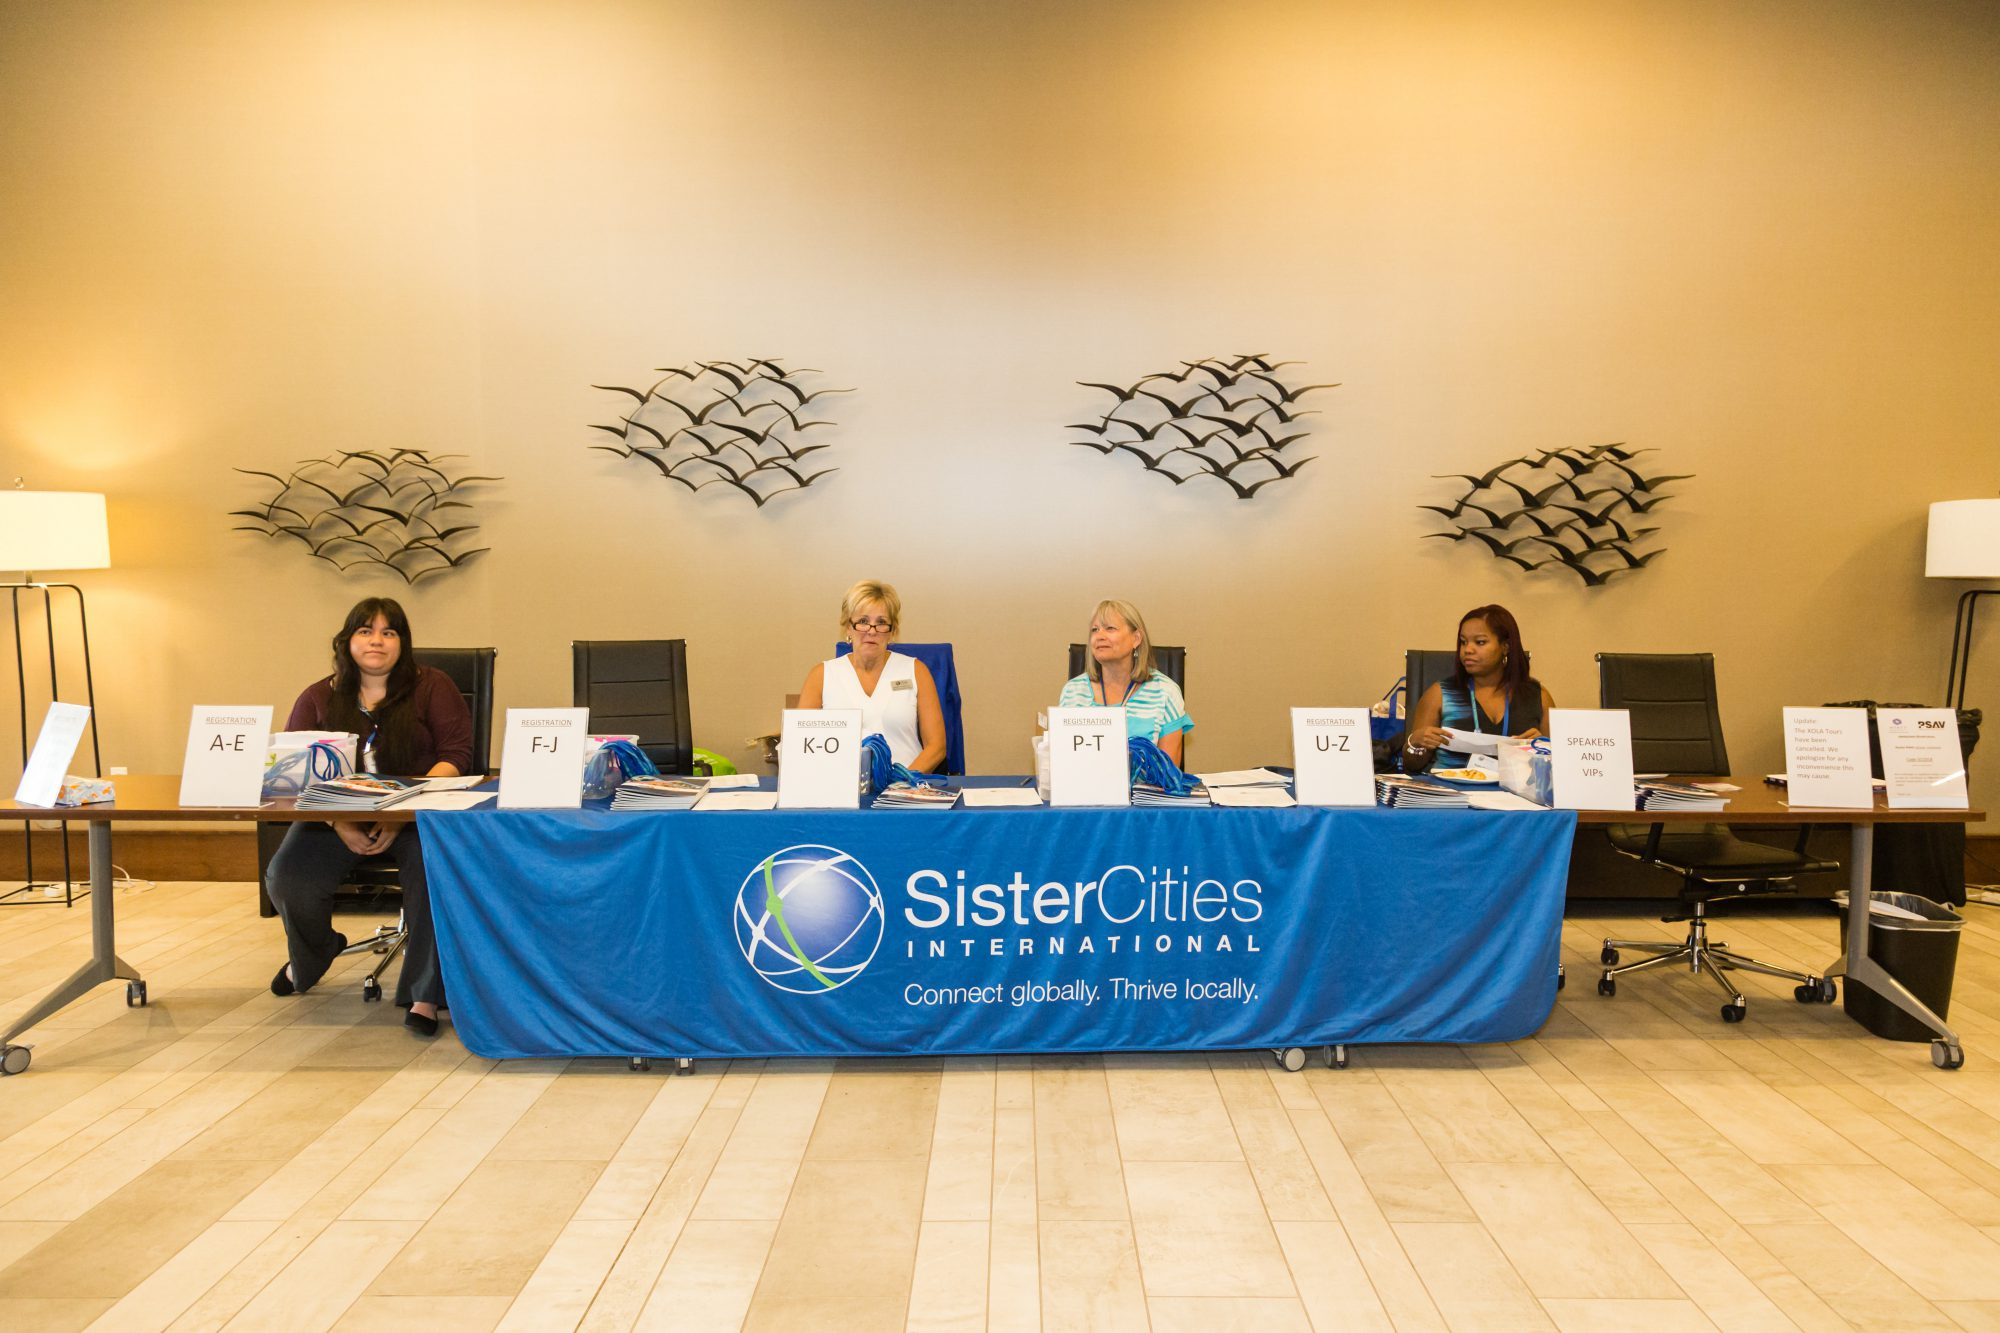 2018 Annual Conference Registration Desk